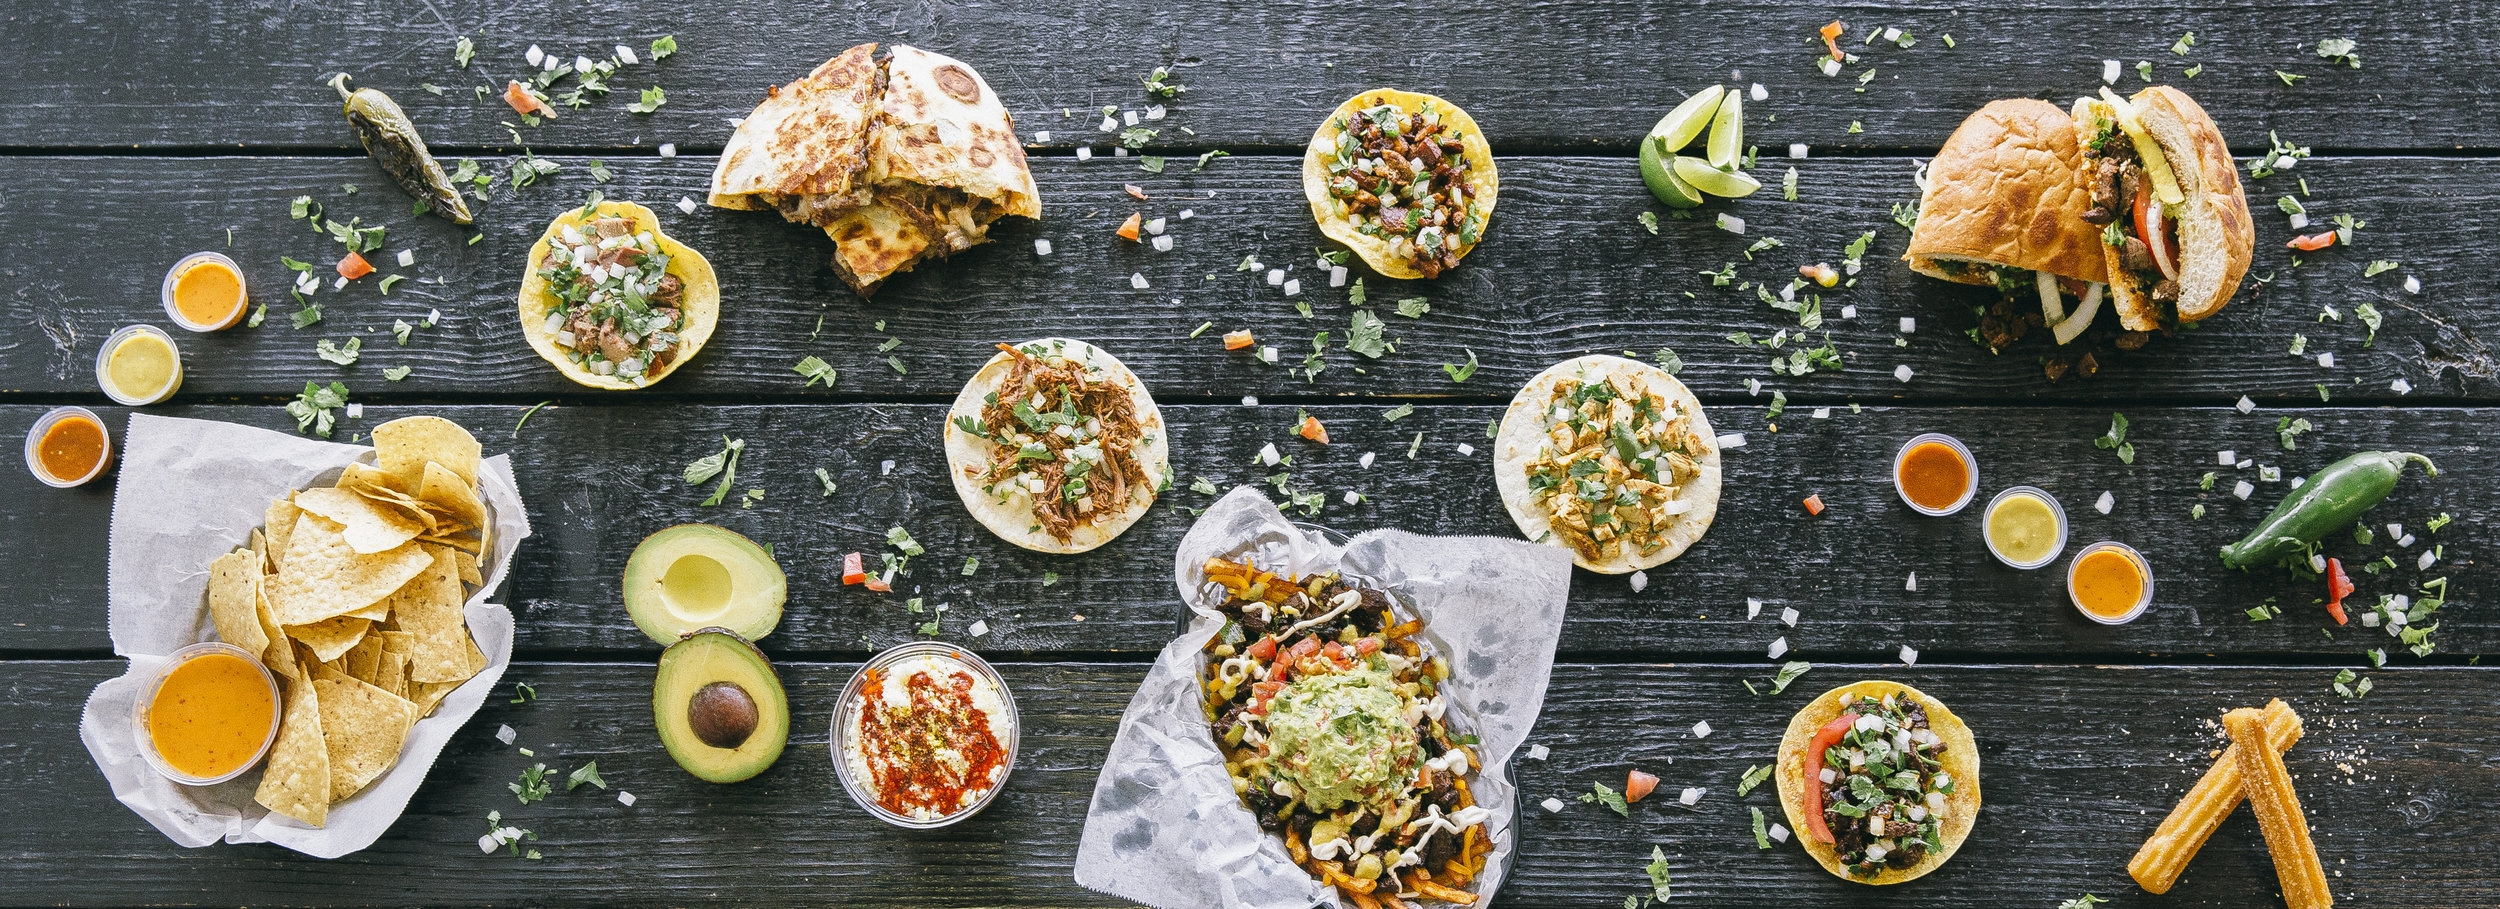 Omg Tacos Dallas Late Night Taco Restaurant Delivery